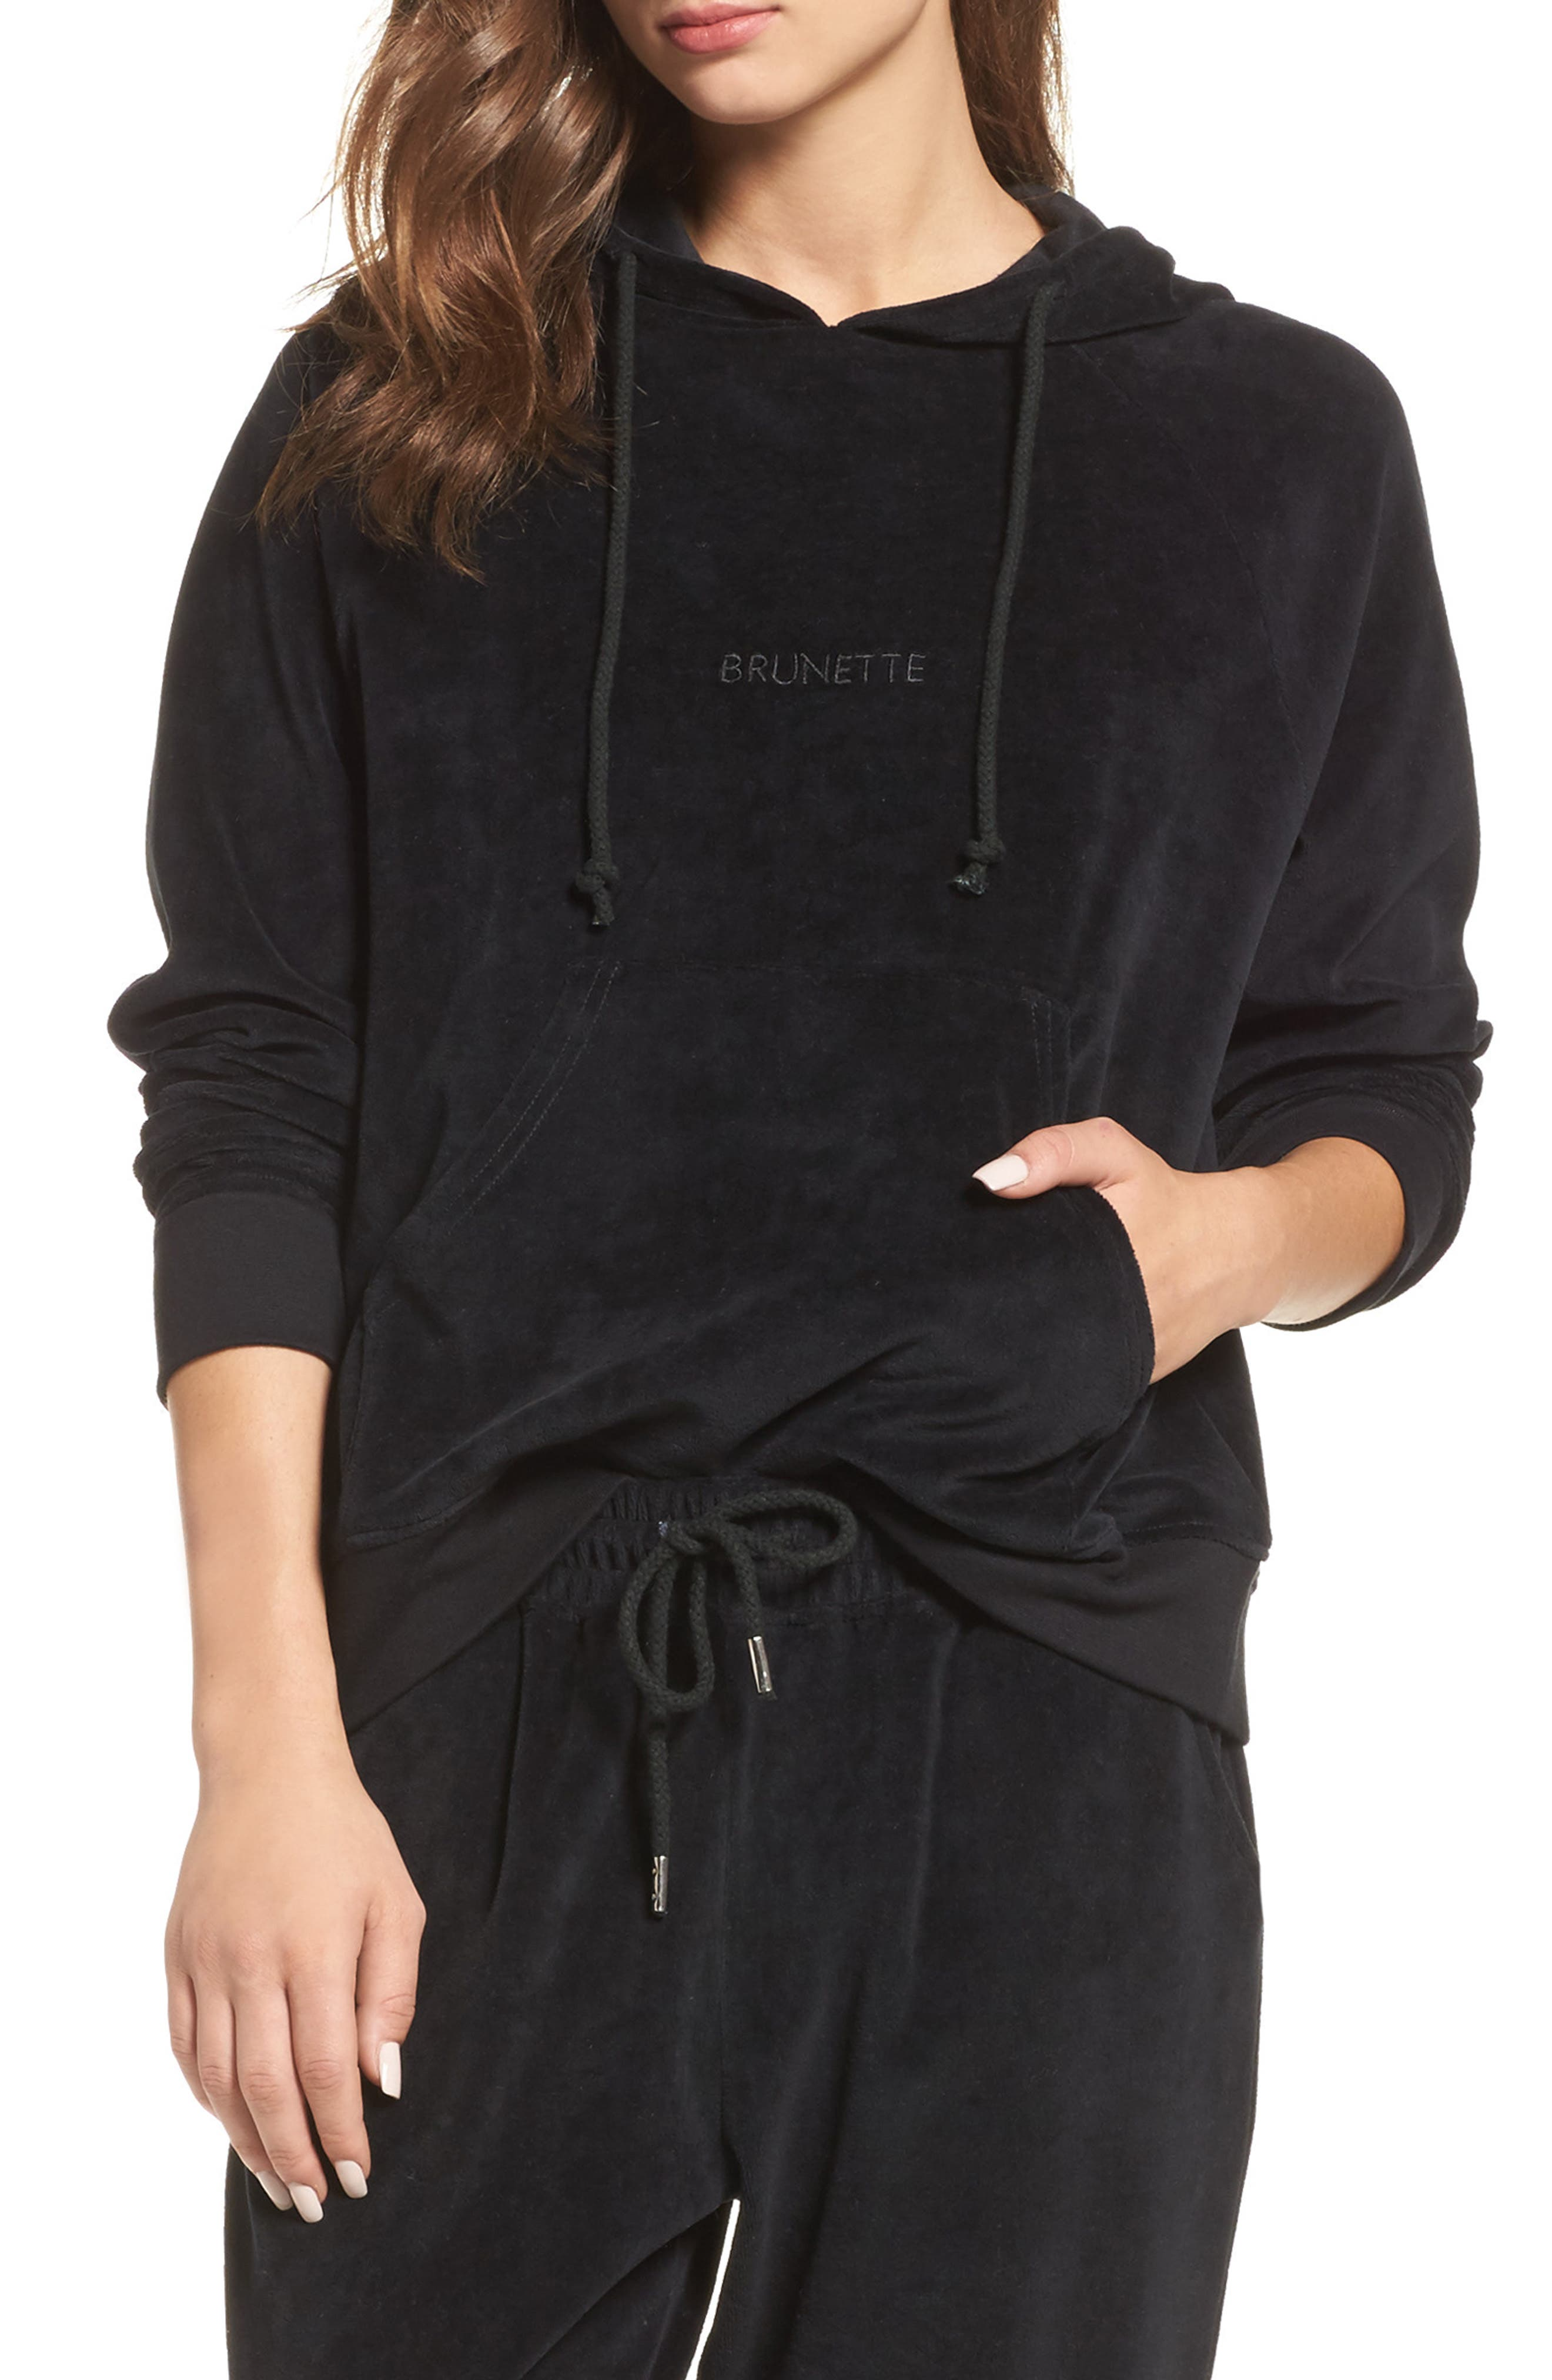 Brunette Embroidered Velour Hoodie,                             Main thumbnail 1, color,                             Black